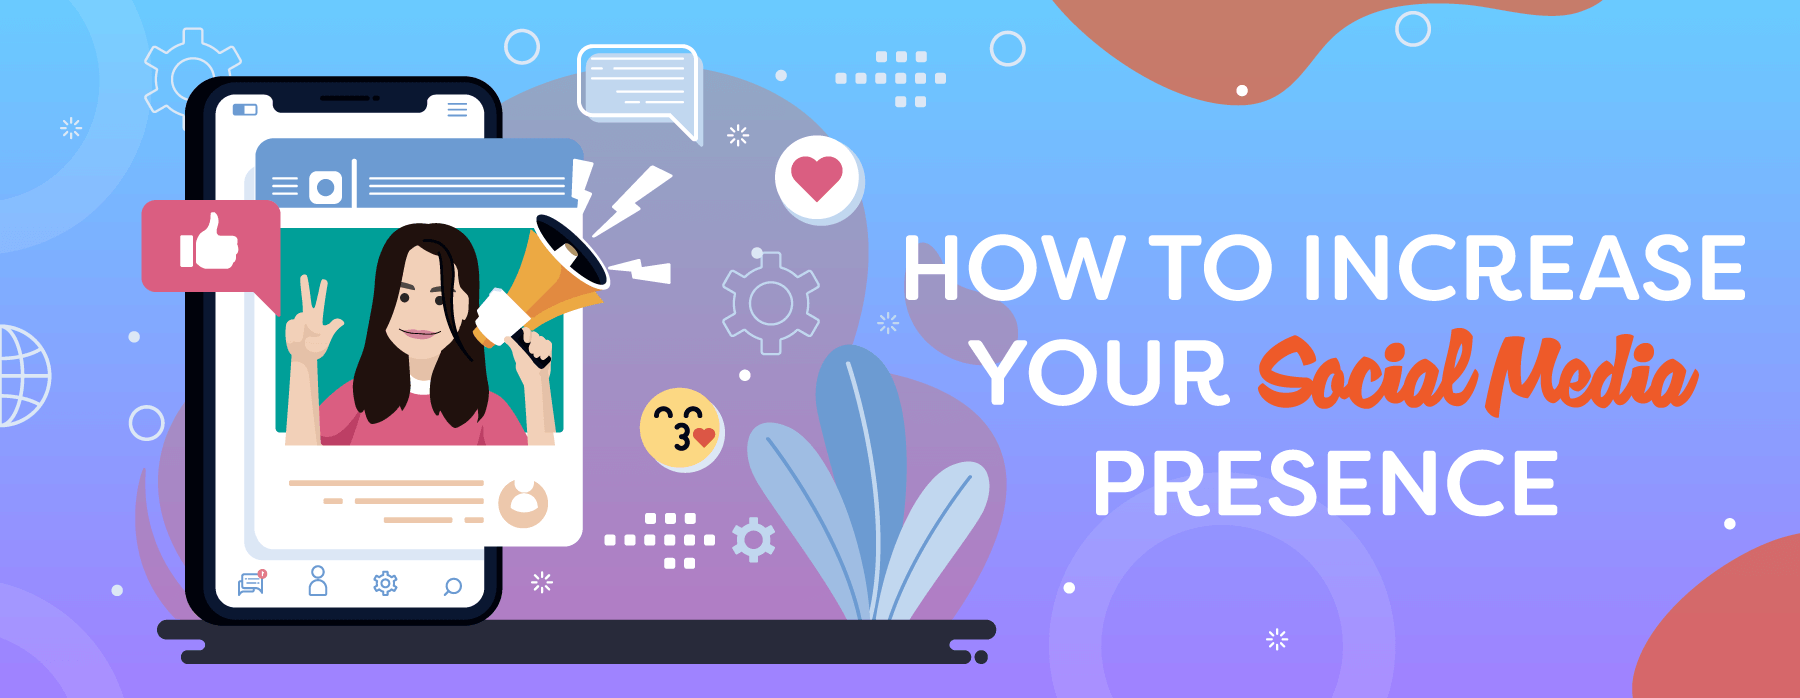 How To Increase Your Social Media Presence